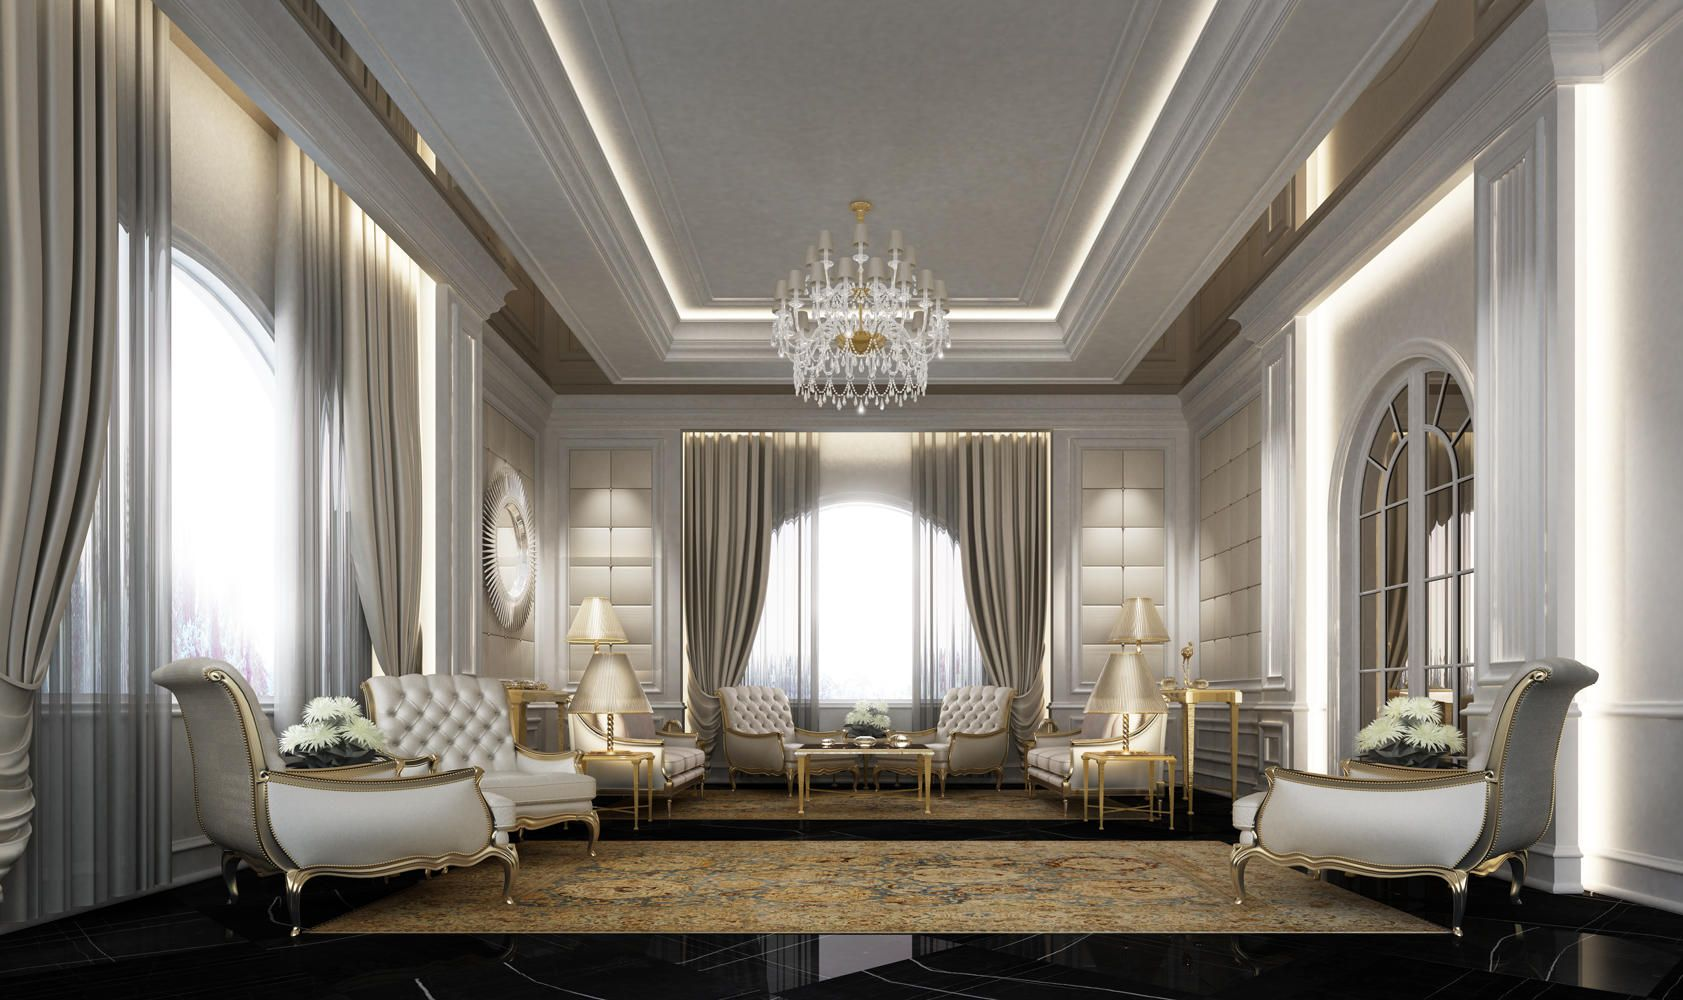 Arabic majlis designs ions design interior design for Interior design and interior decoration